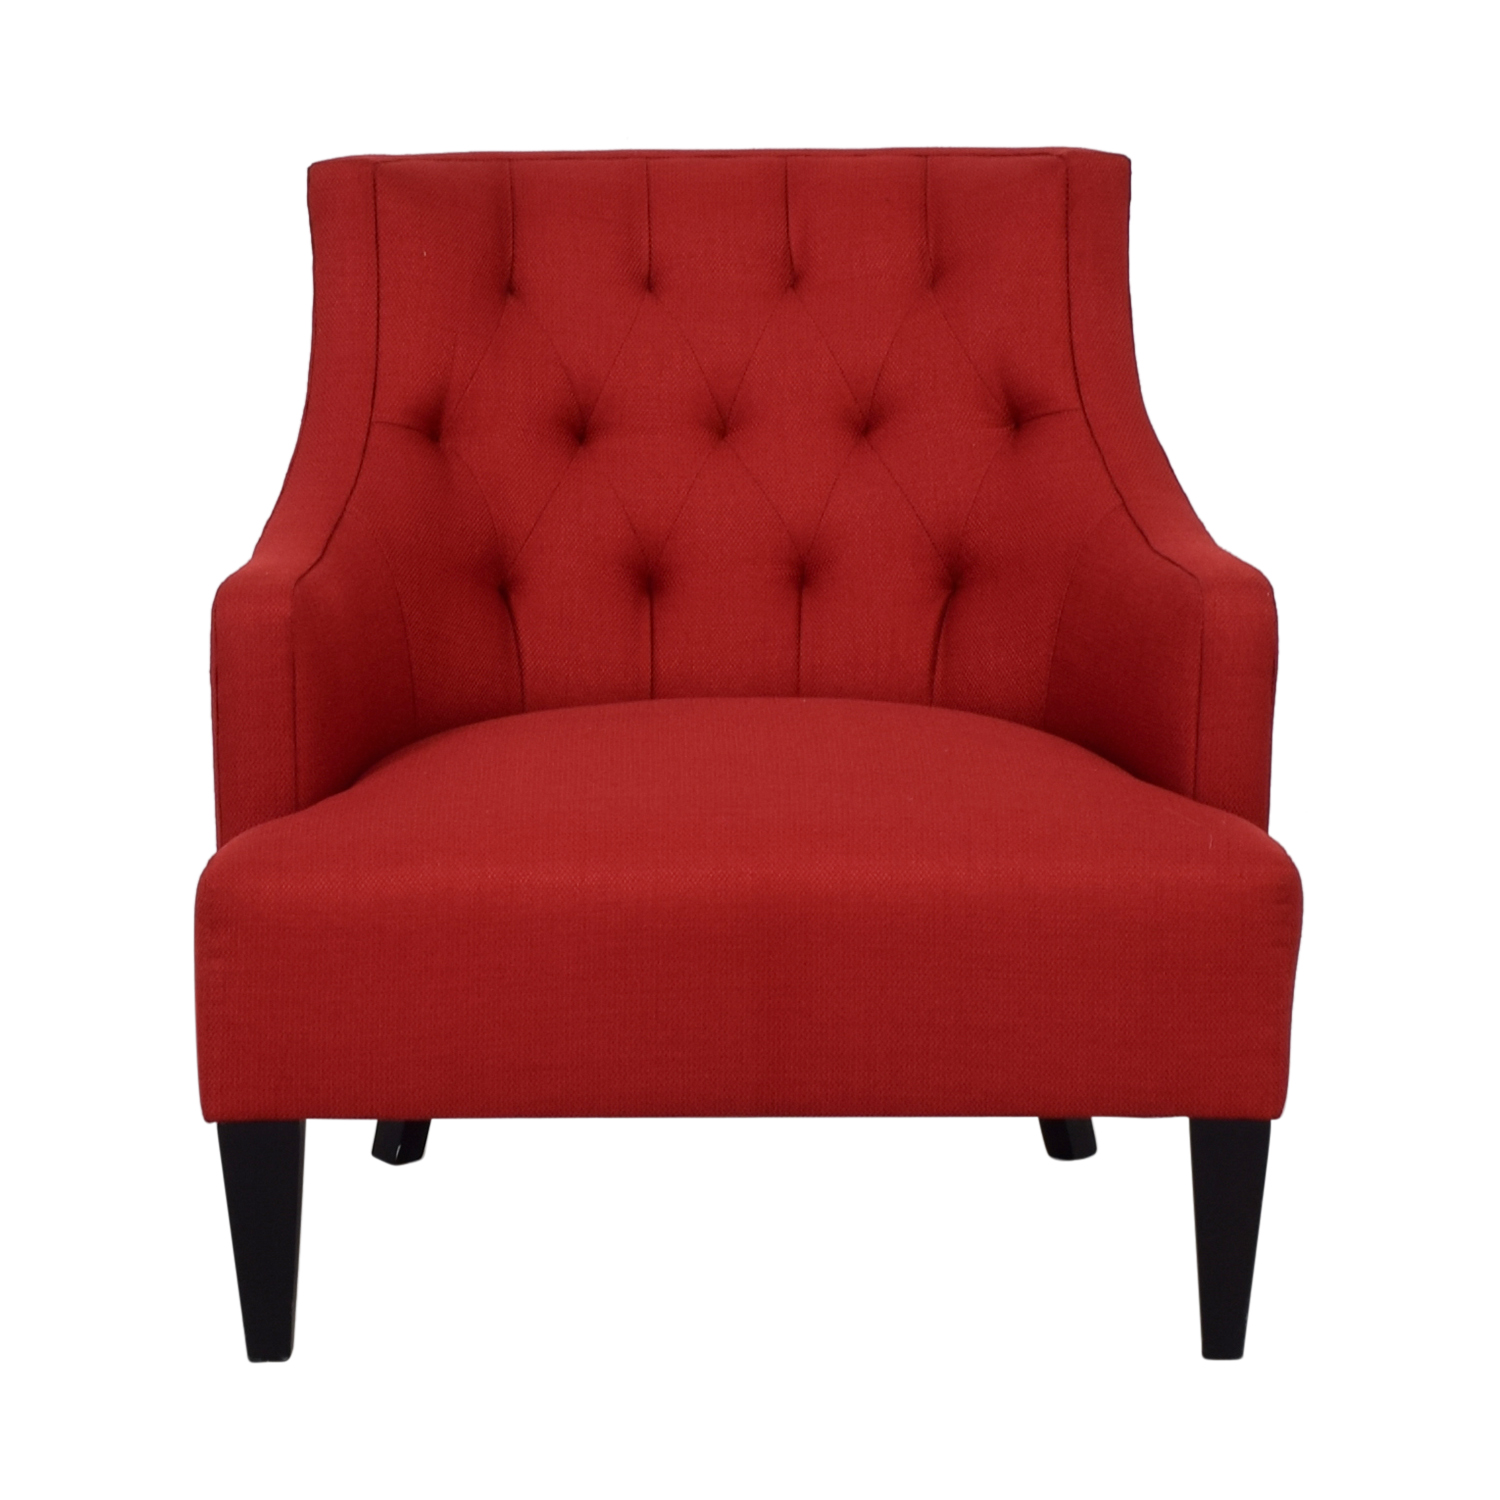 70 Off Crate Barrel Crate Barrel Red Fabric Accent Chair Chairs